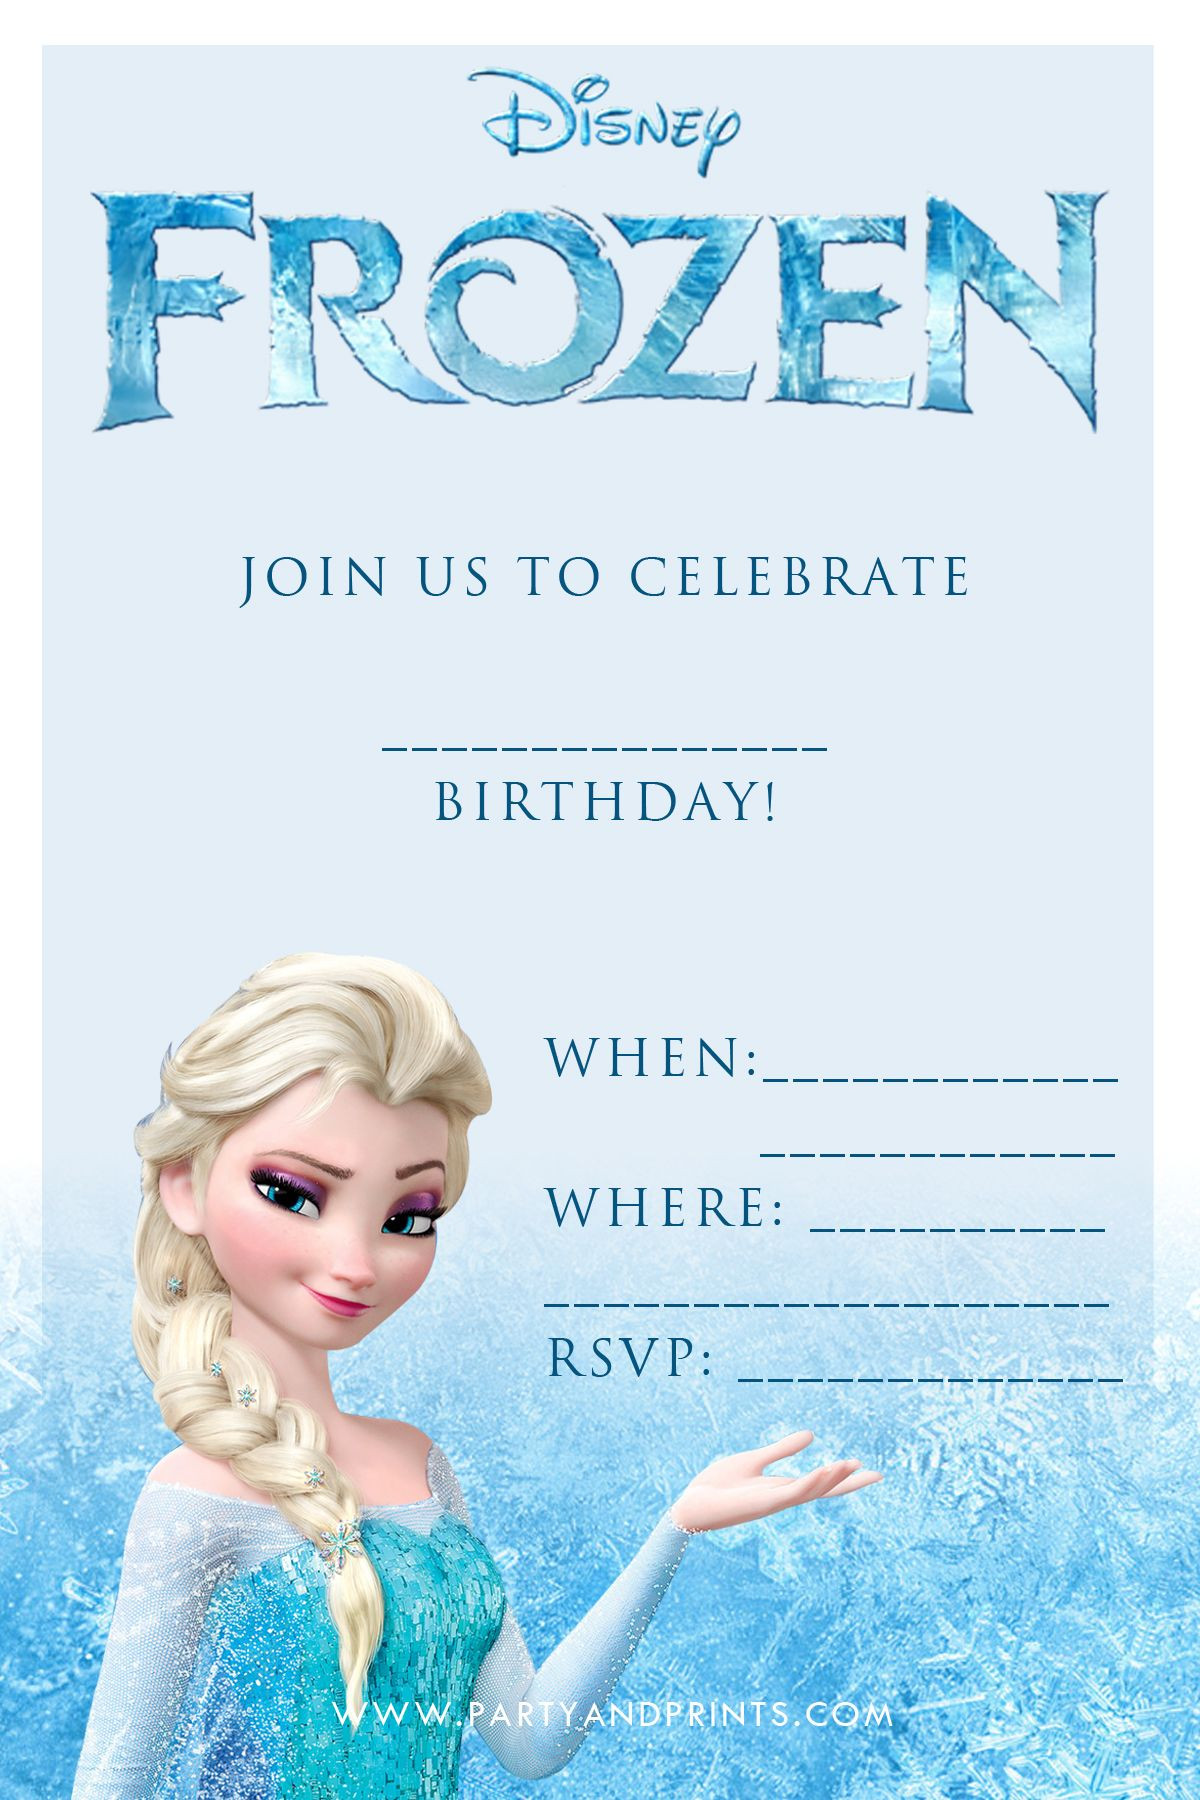 photograph about Frozen Birthday Card Printable referred to as Absolutely free printable invitation versus actually